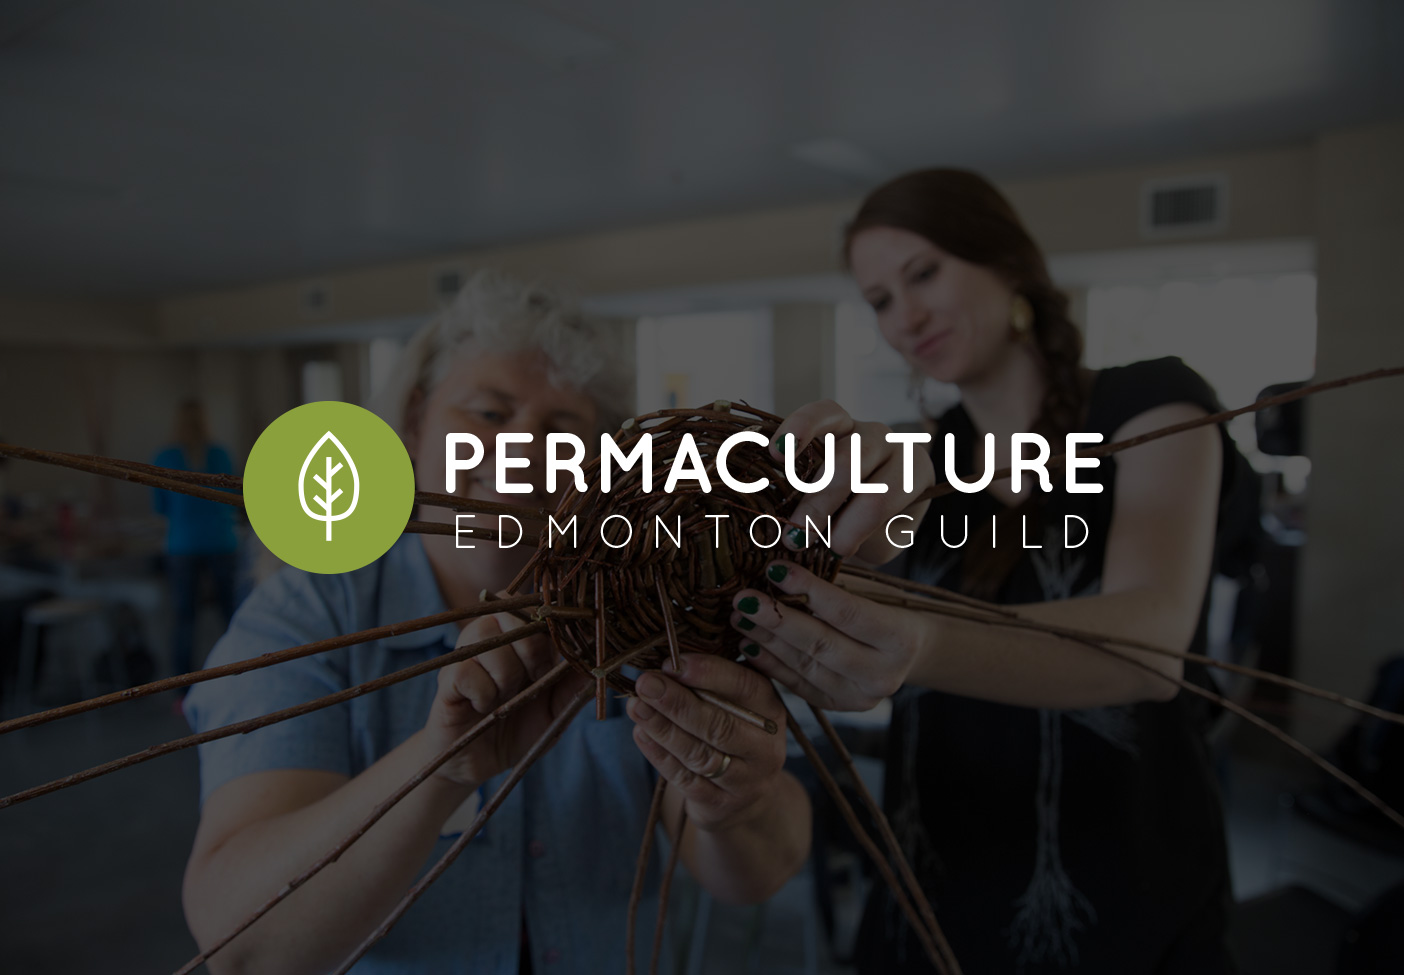 Edmonton-Permaculture-Guild-Main-Photo.jpg